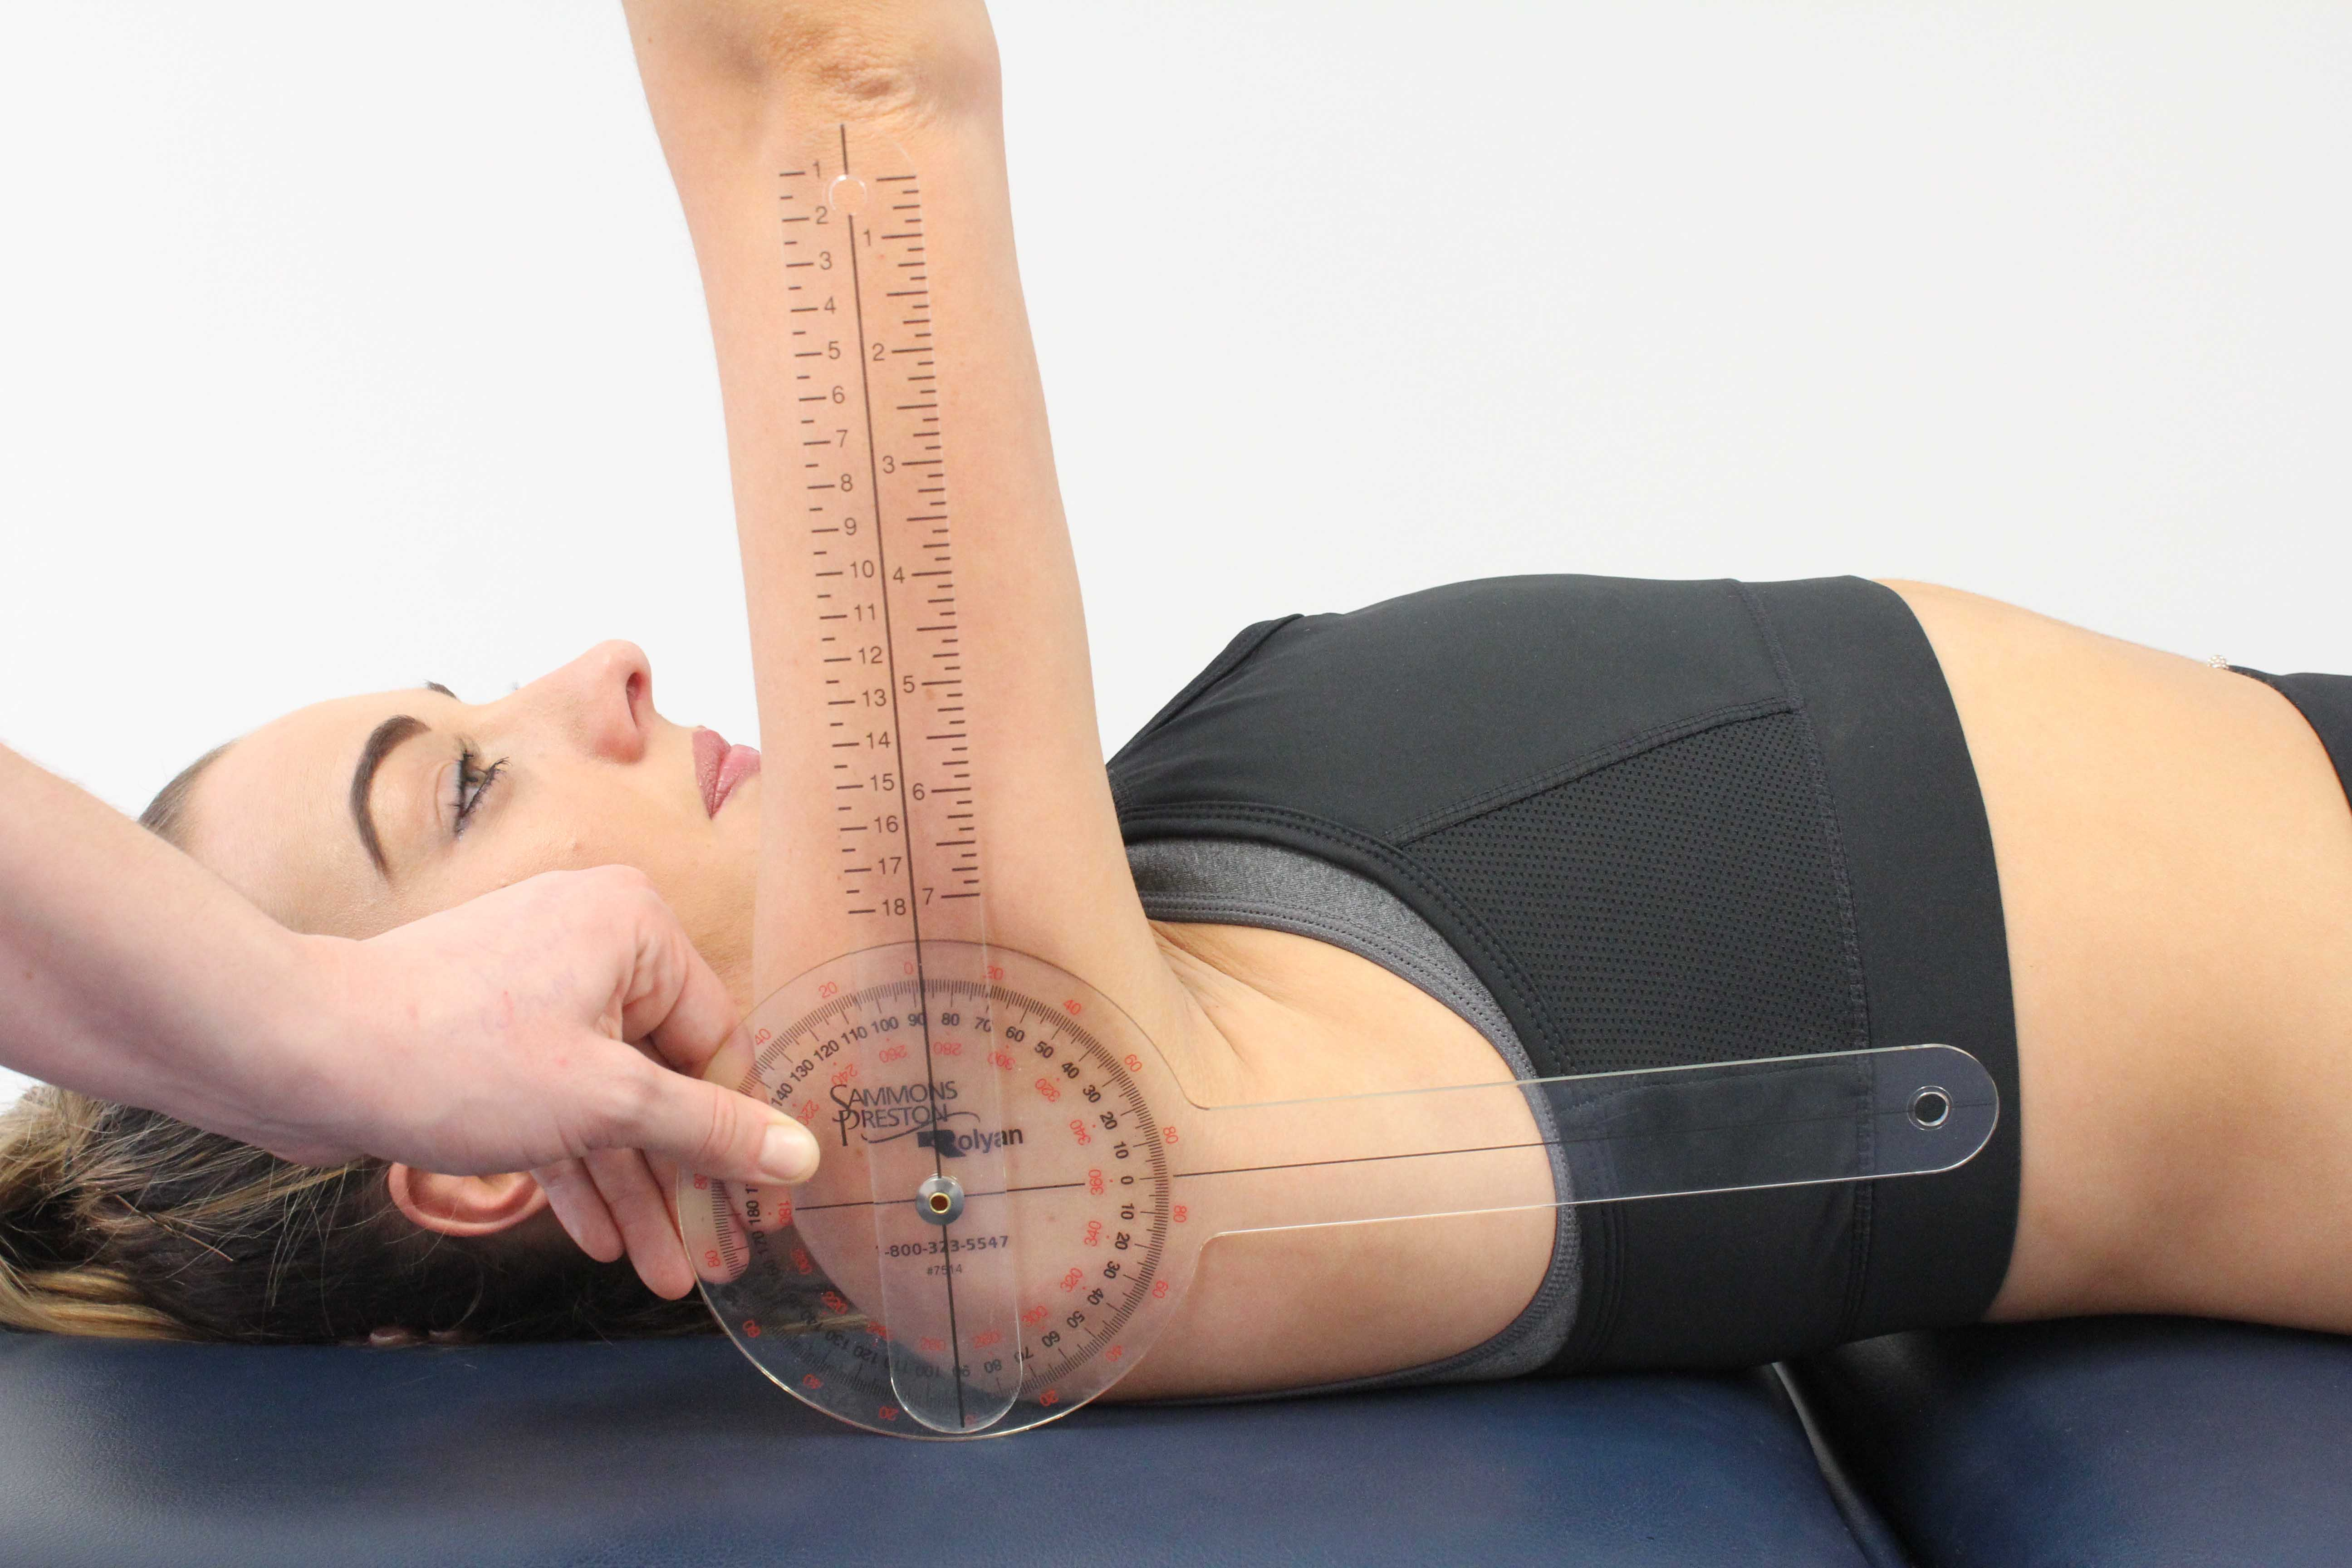 Physiotherapist measuring available range of movement at the shoulder using a goniometer